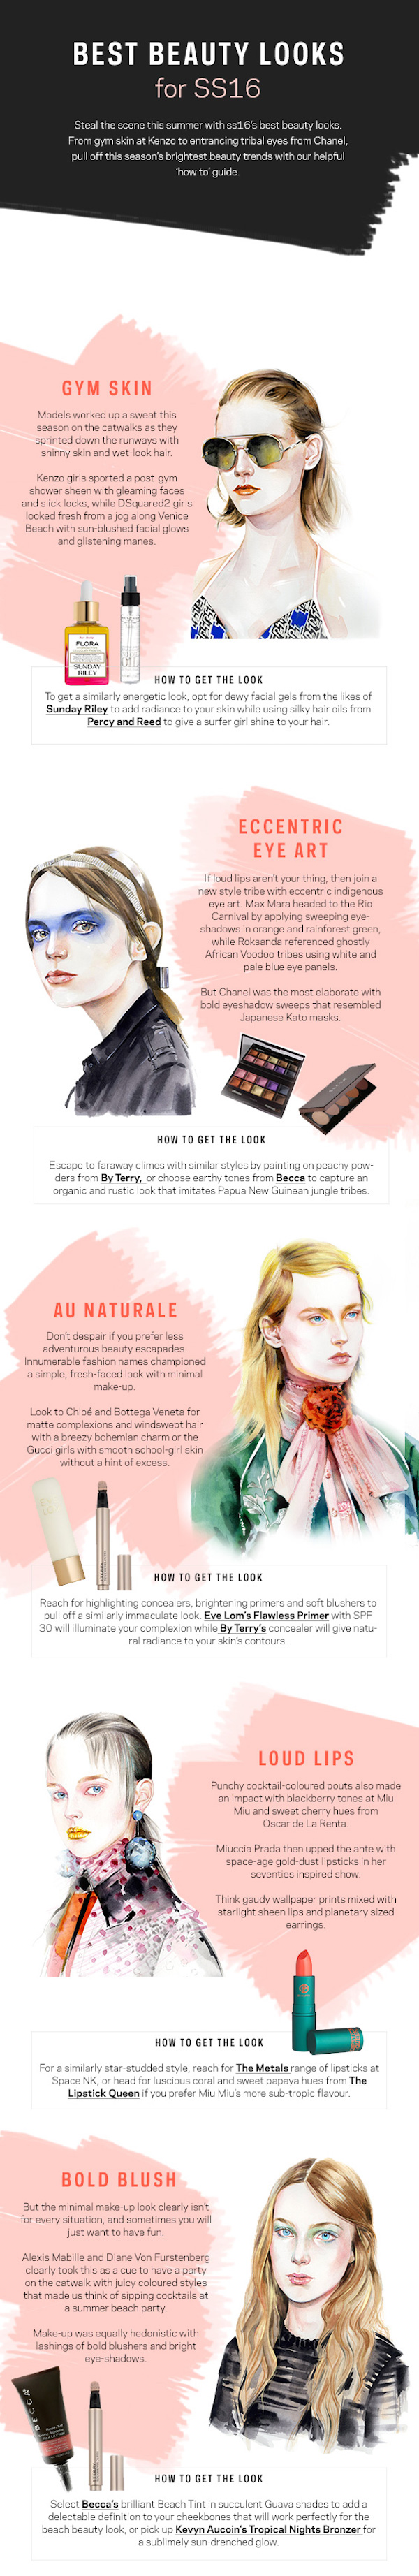 Beauty Infographic Farfetch